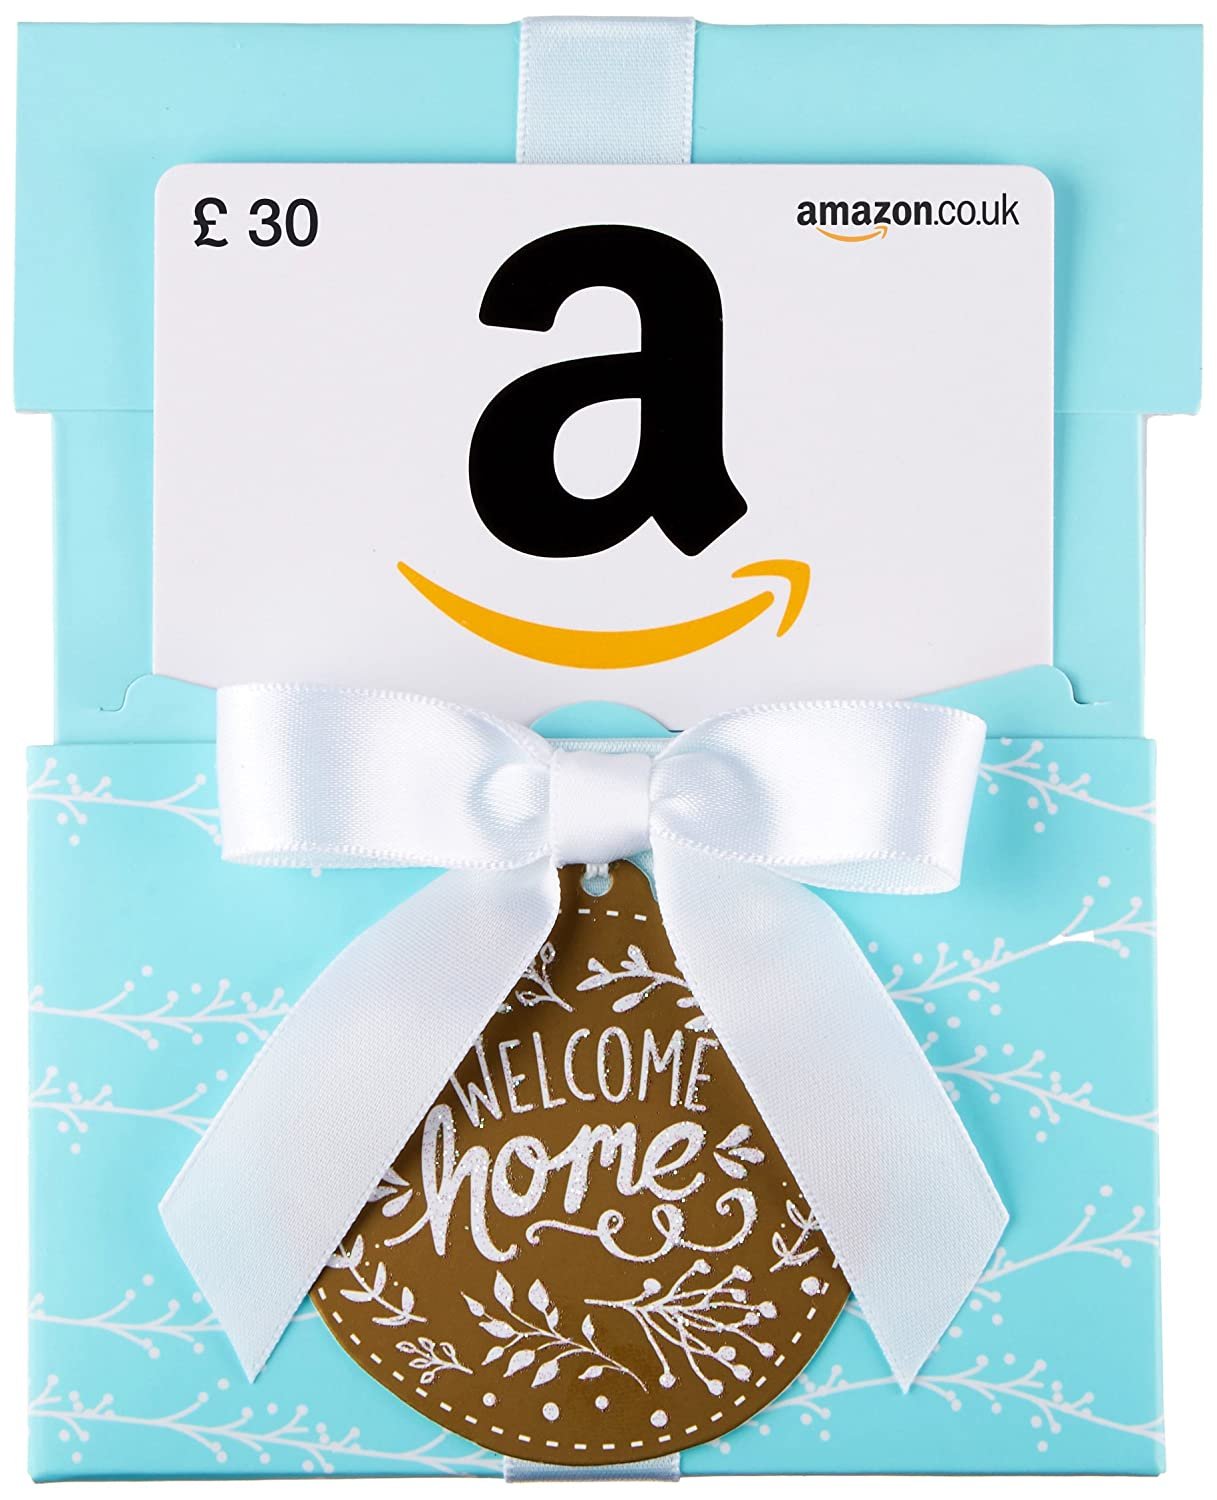 Amazon.co.uk Gift Card - Welcome Home Reveal - FREE One-Day Delivery Amazon EU S.à.r.l.